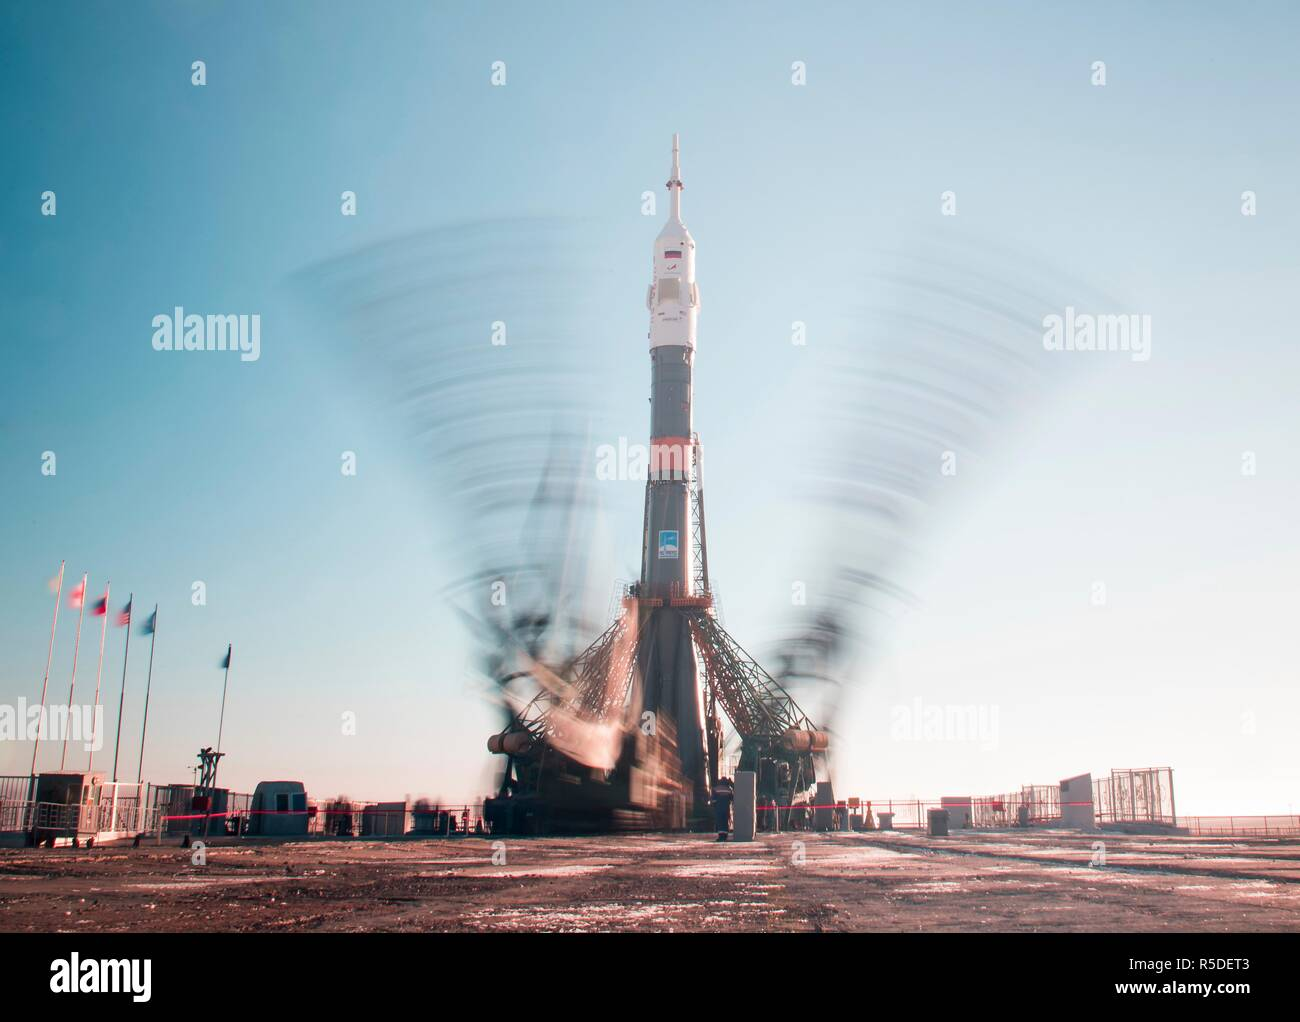 Baikonur, Kazakhstan, 1st December 2018. The Soyuz booster rocket and MS-11 spacecraft is upright on the launch pad as the gantry arms begin to close early morning at the Baikonur Cosmodrome December 1, 2018 in Baikonur, Kazakhstan. The rocket will carry Expedition 58 crew members Russian Oleg Kononenko of Roscosmos, American Anne McClain and Canadian David Saint-Jacques to the International Space Station on December 3rd. Credit: Planetpix/Alamy Live News - Stock Image